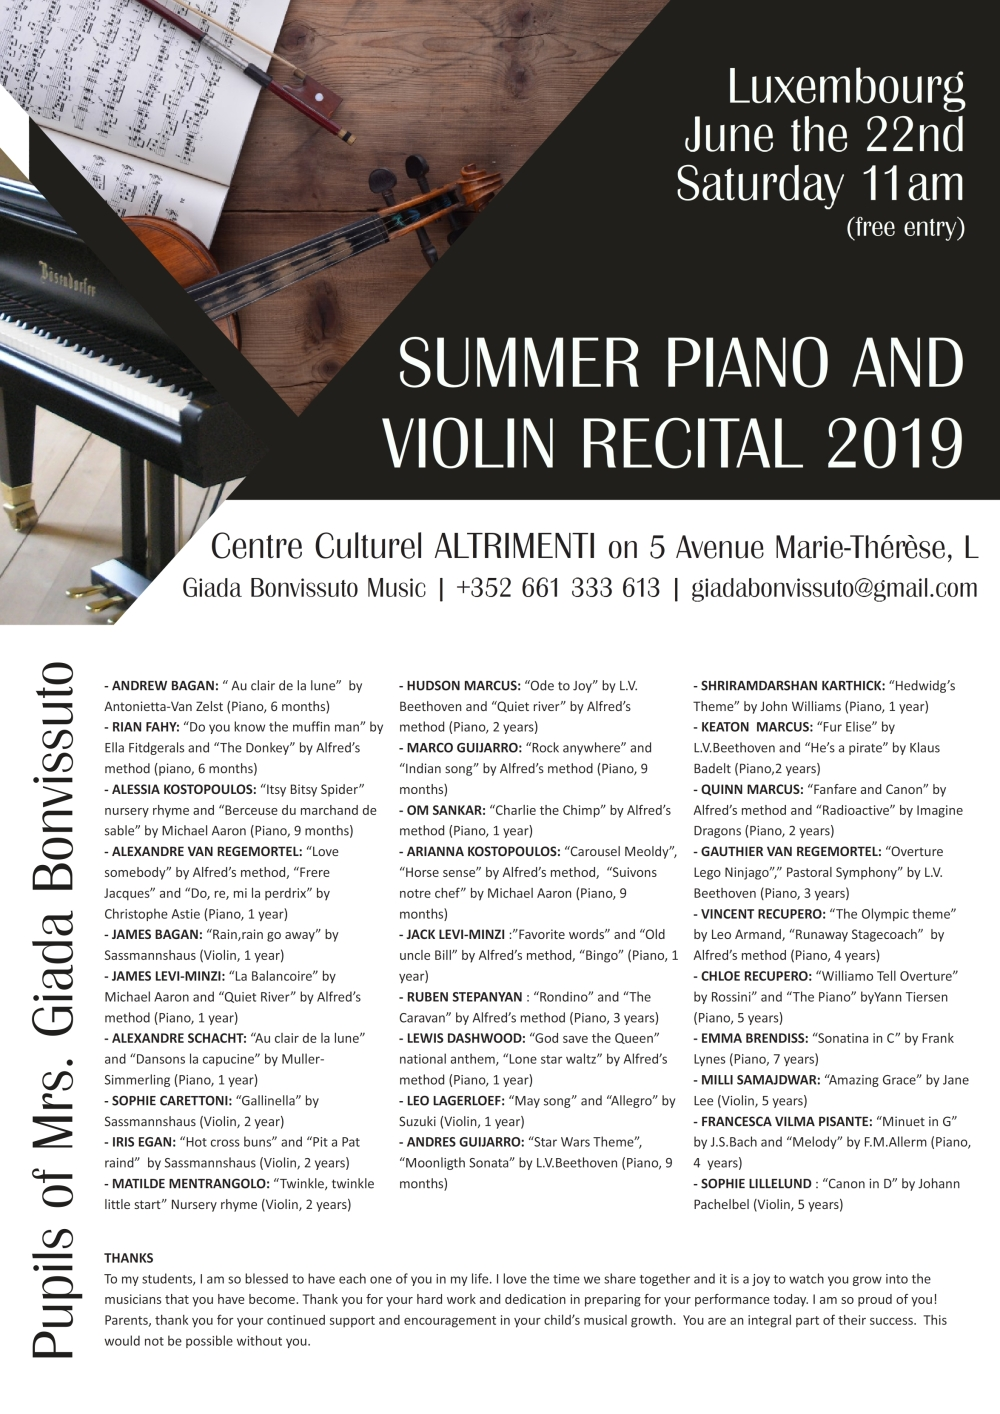 SUMMER PIANO AND VIOLIN RECITAL 2019